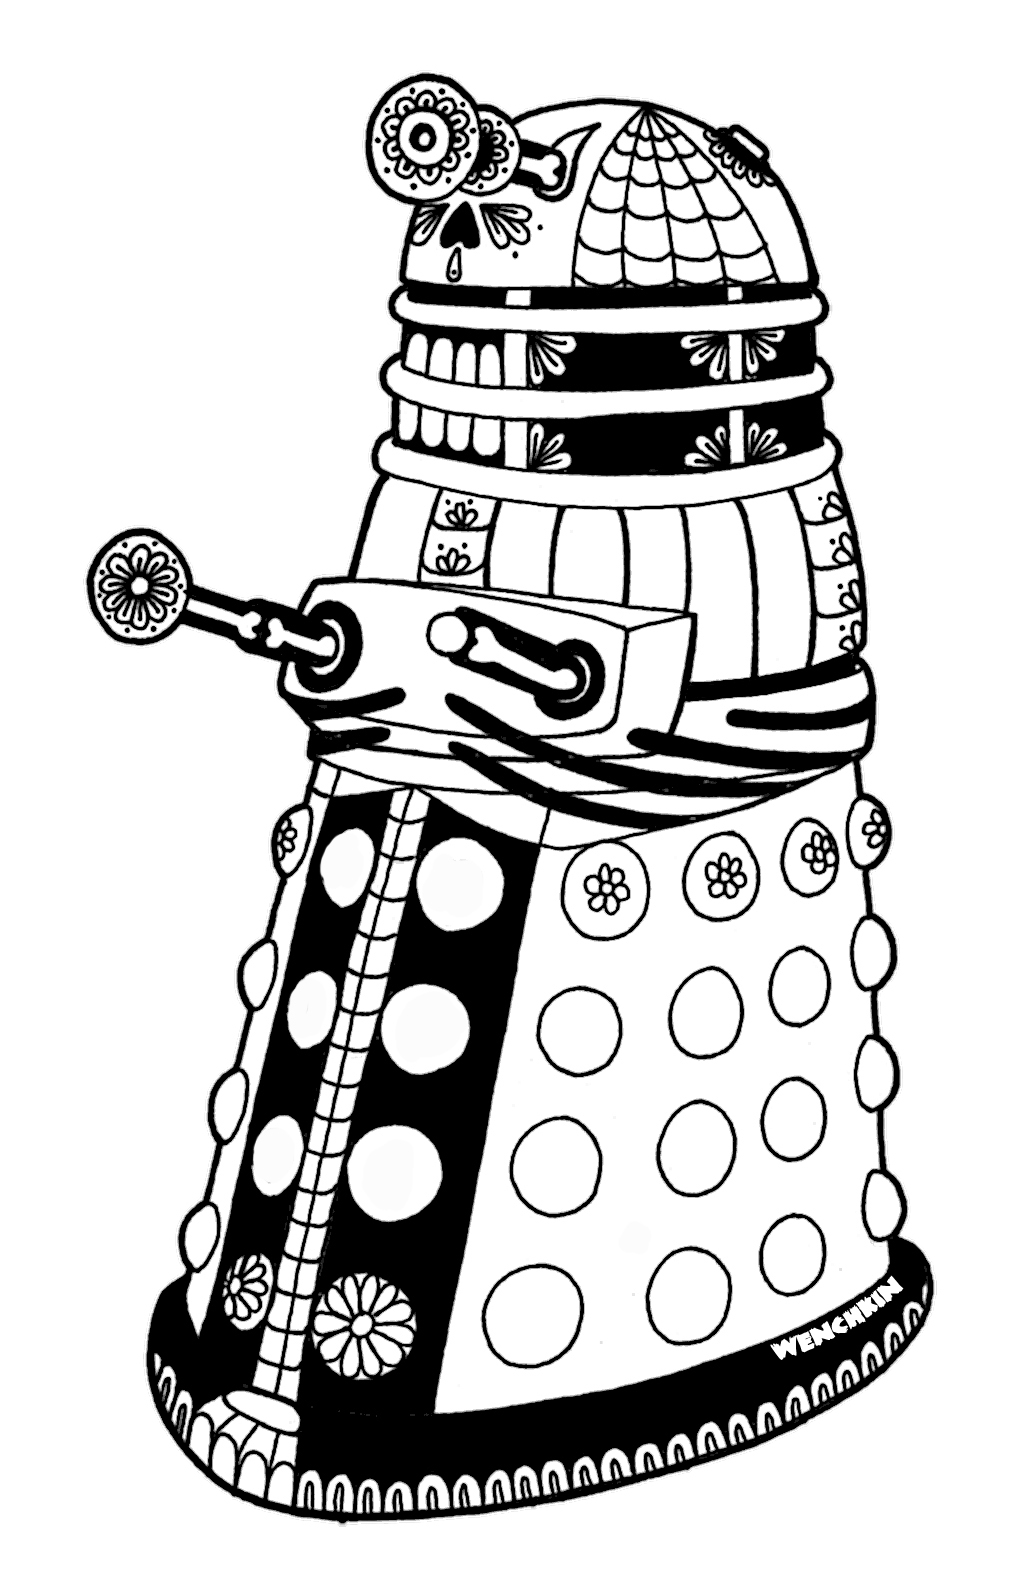 dalek colouring pages learn how to draw dalek from doctor who doctor who step colouring dalek pages